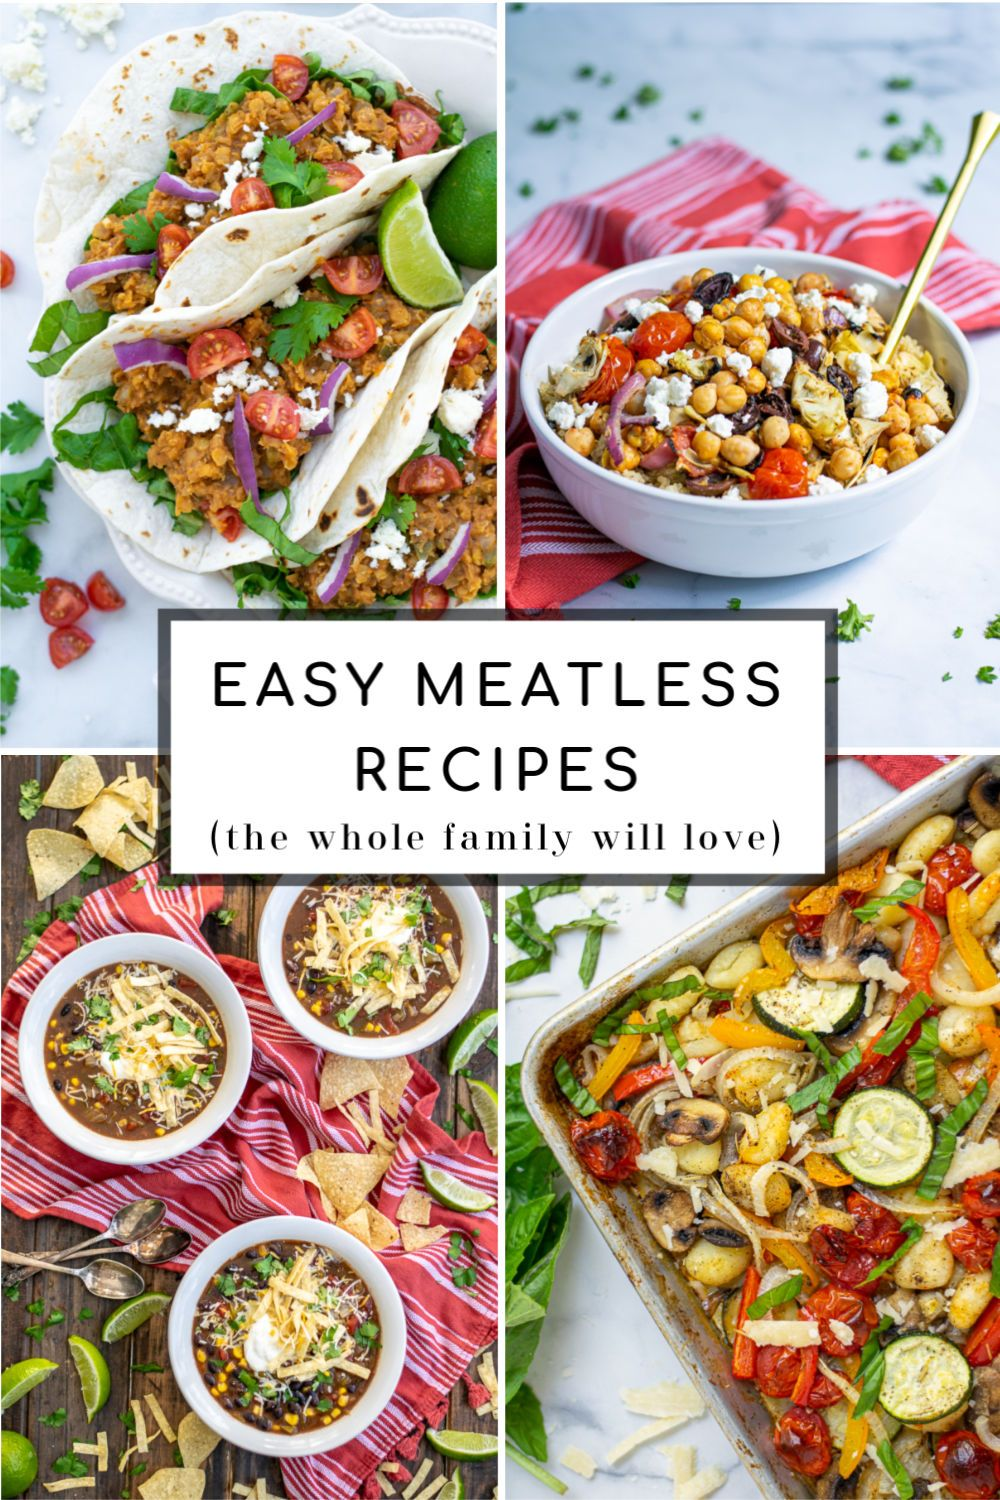 Easy Meatless Meal Ideas That Are Healthy Family Favorites Perfect For Kids Meatlessmeals Easy Forlent Fam Meatless Meals Meatless Meals Healthy Meatless